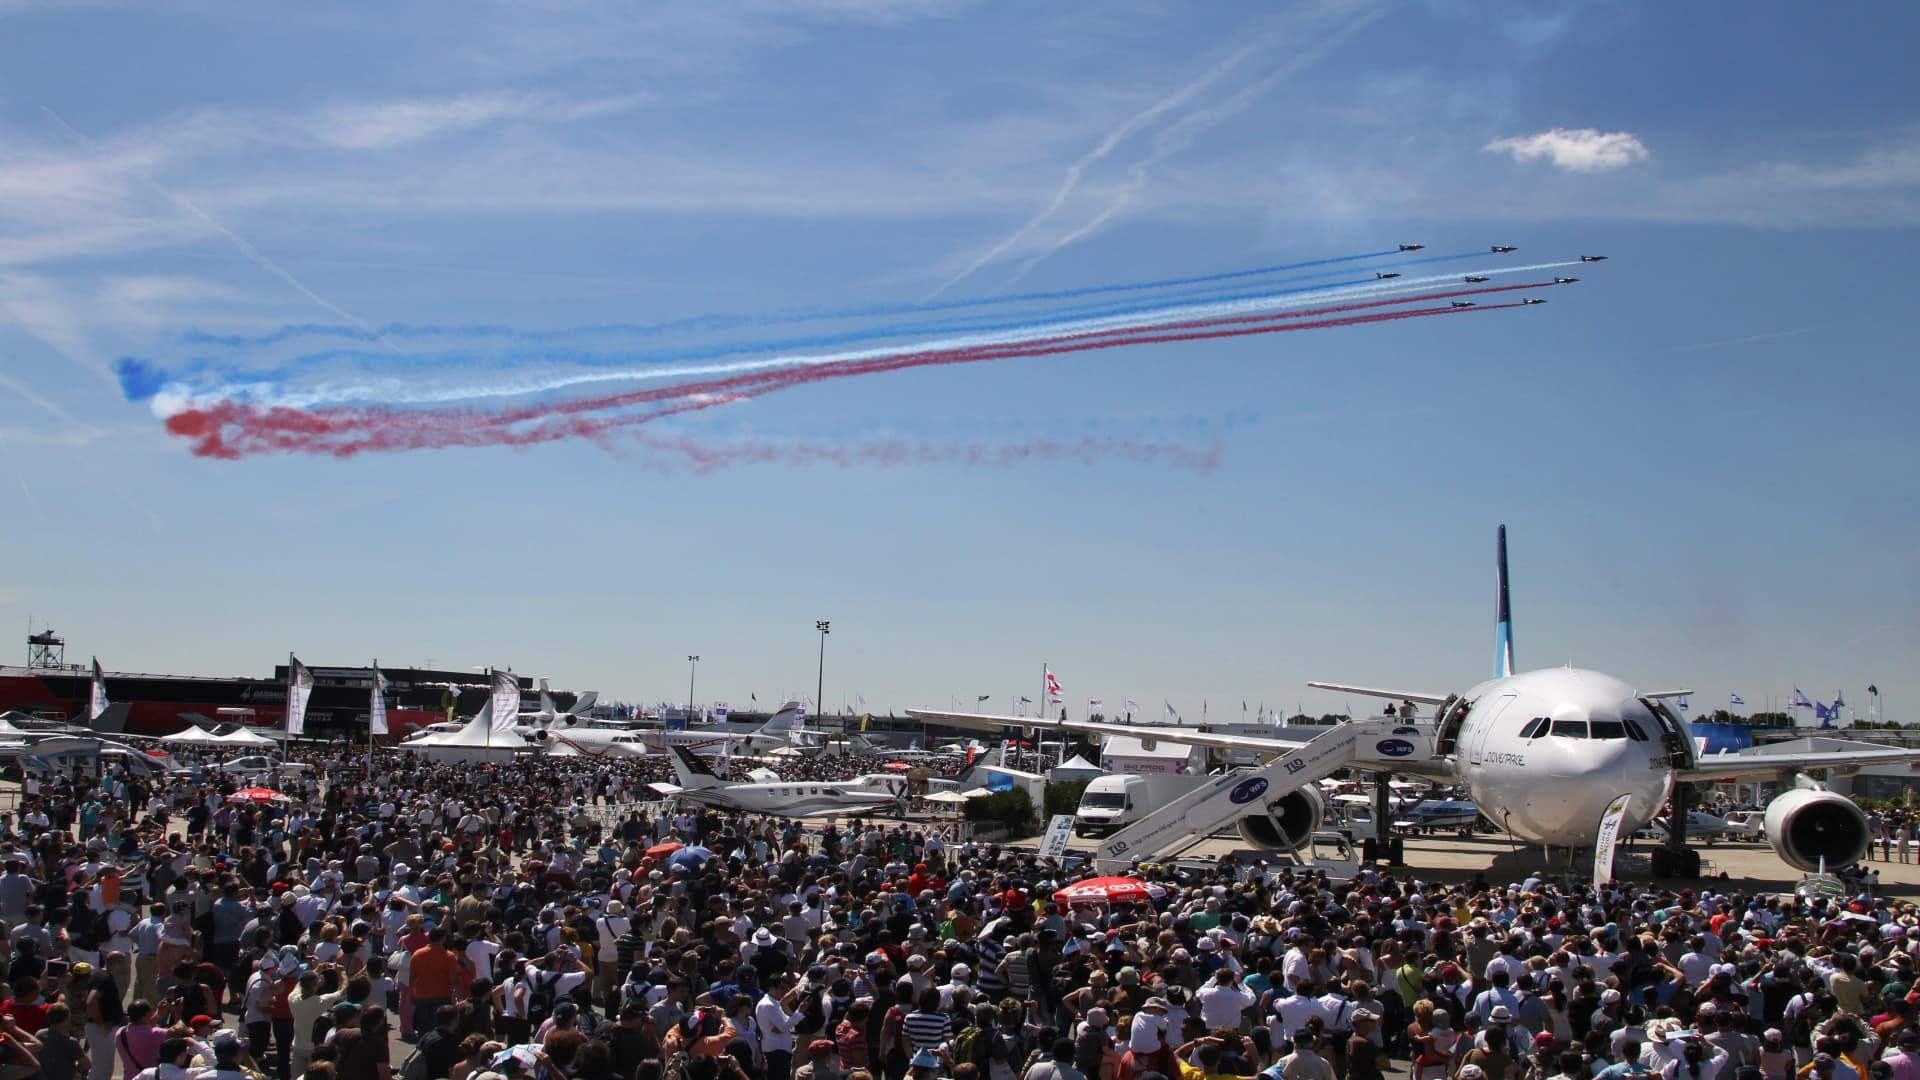 The French ''Patrouille de France'' perform aerobatics at the Paris Air Show in 2011